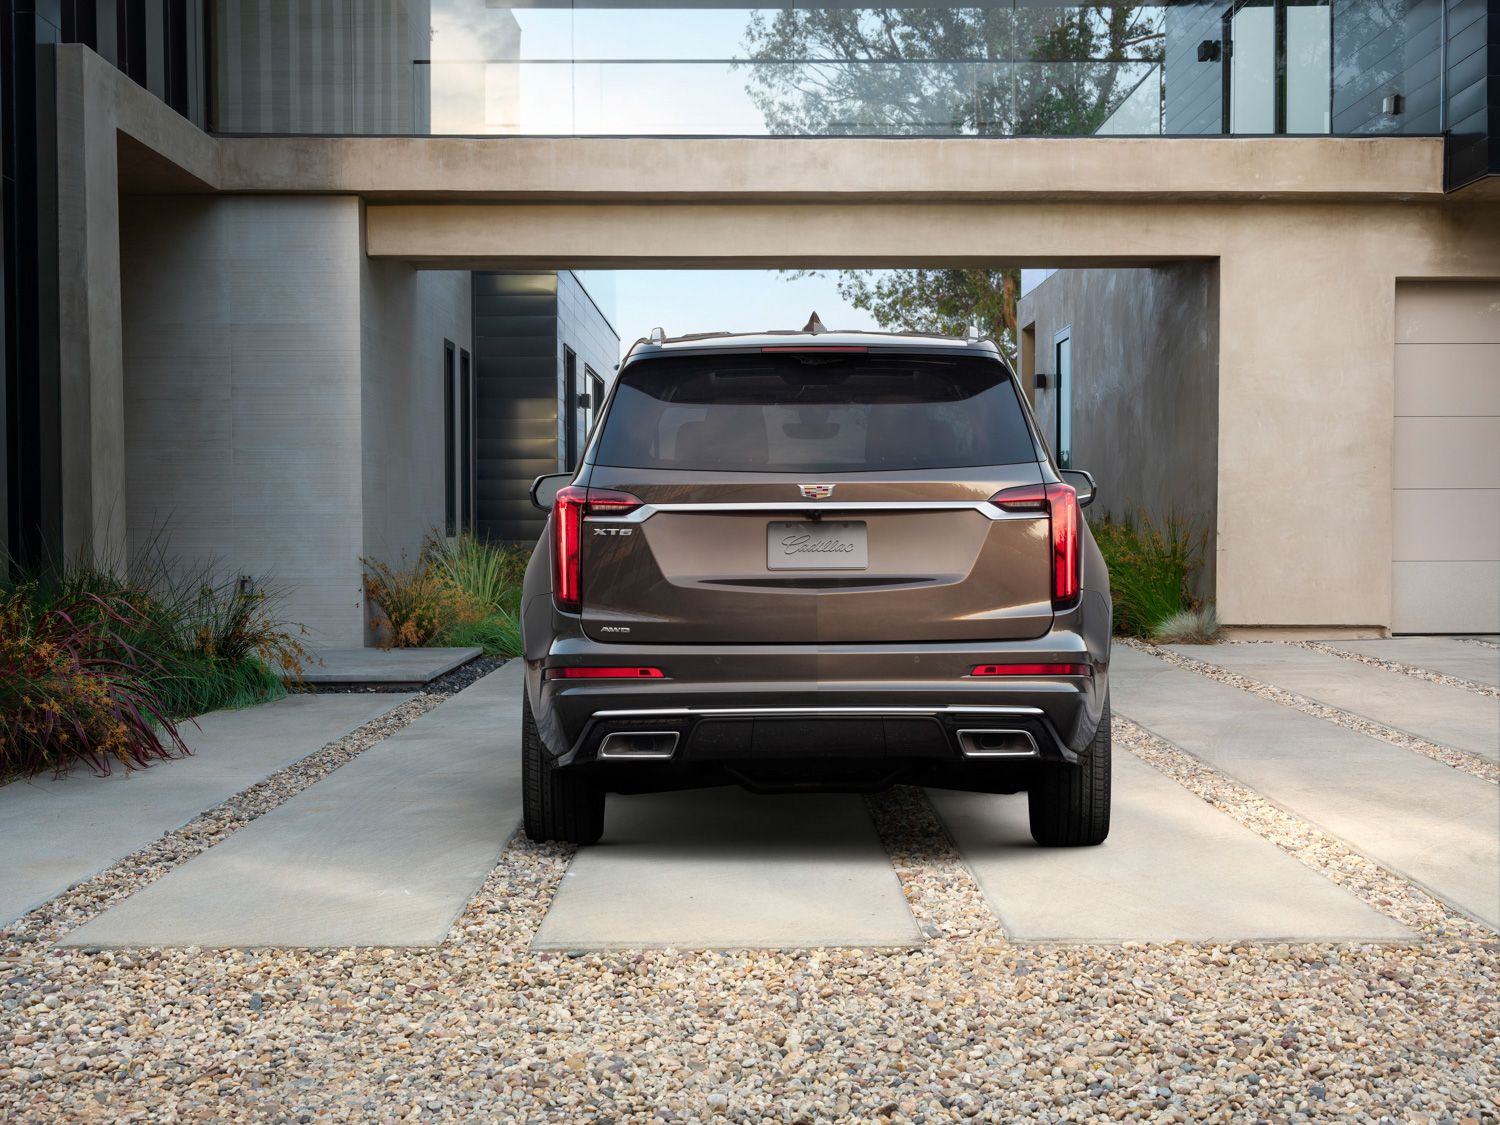 2020 Cadillac XT6 rear end